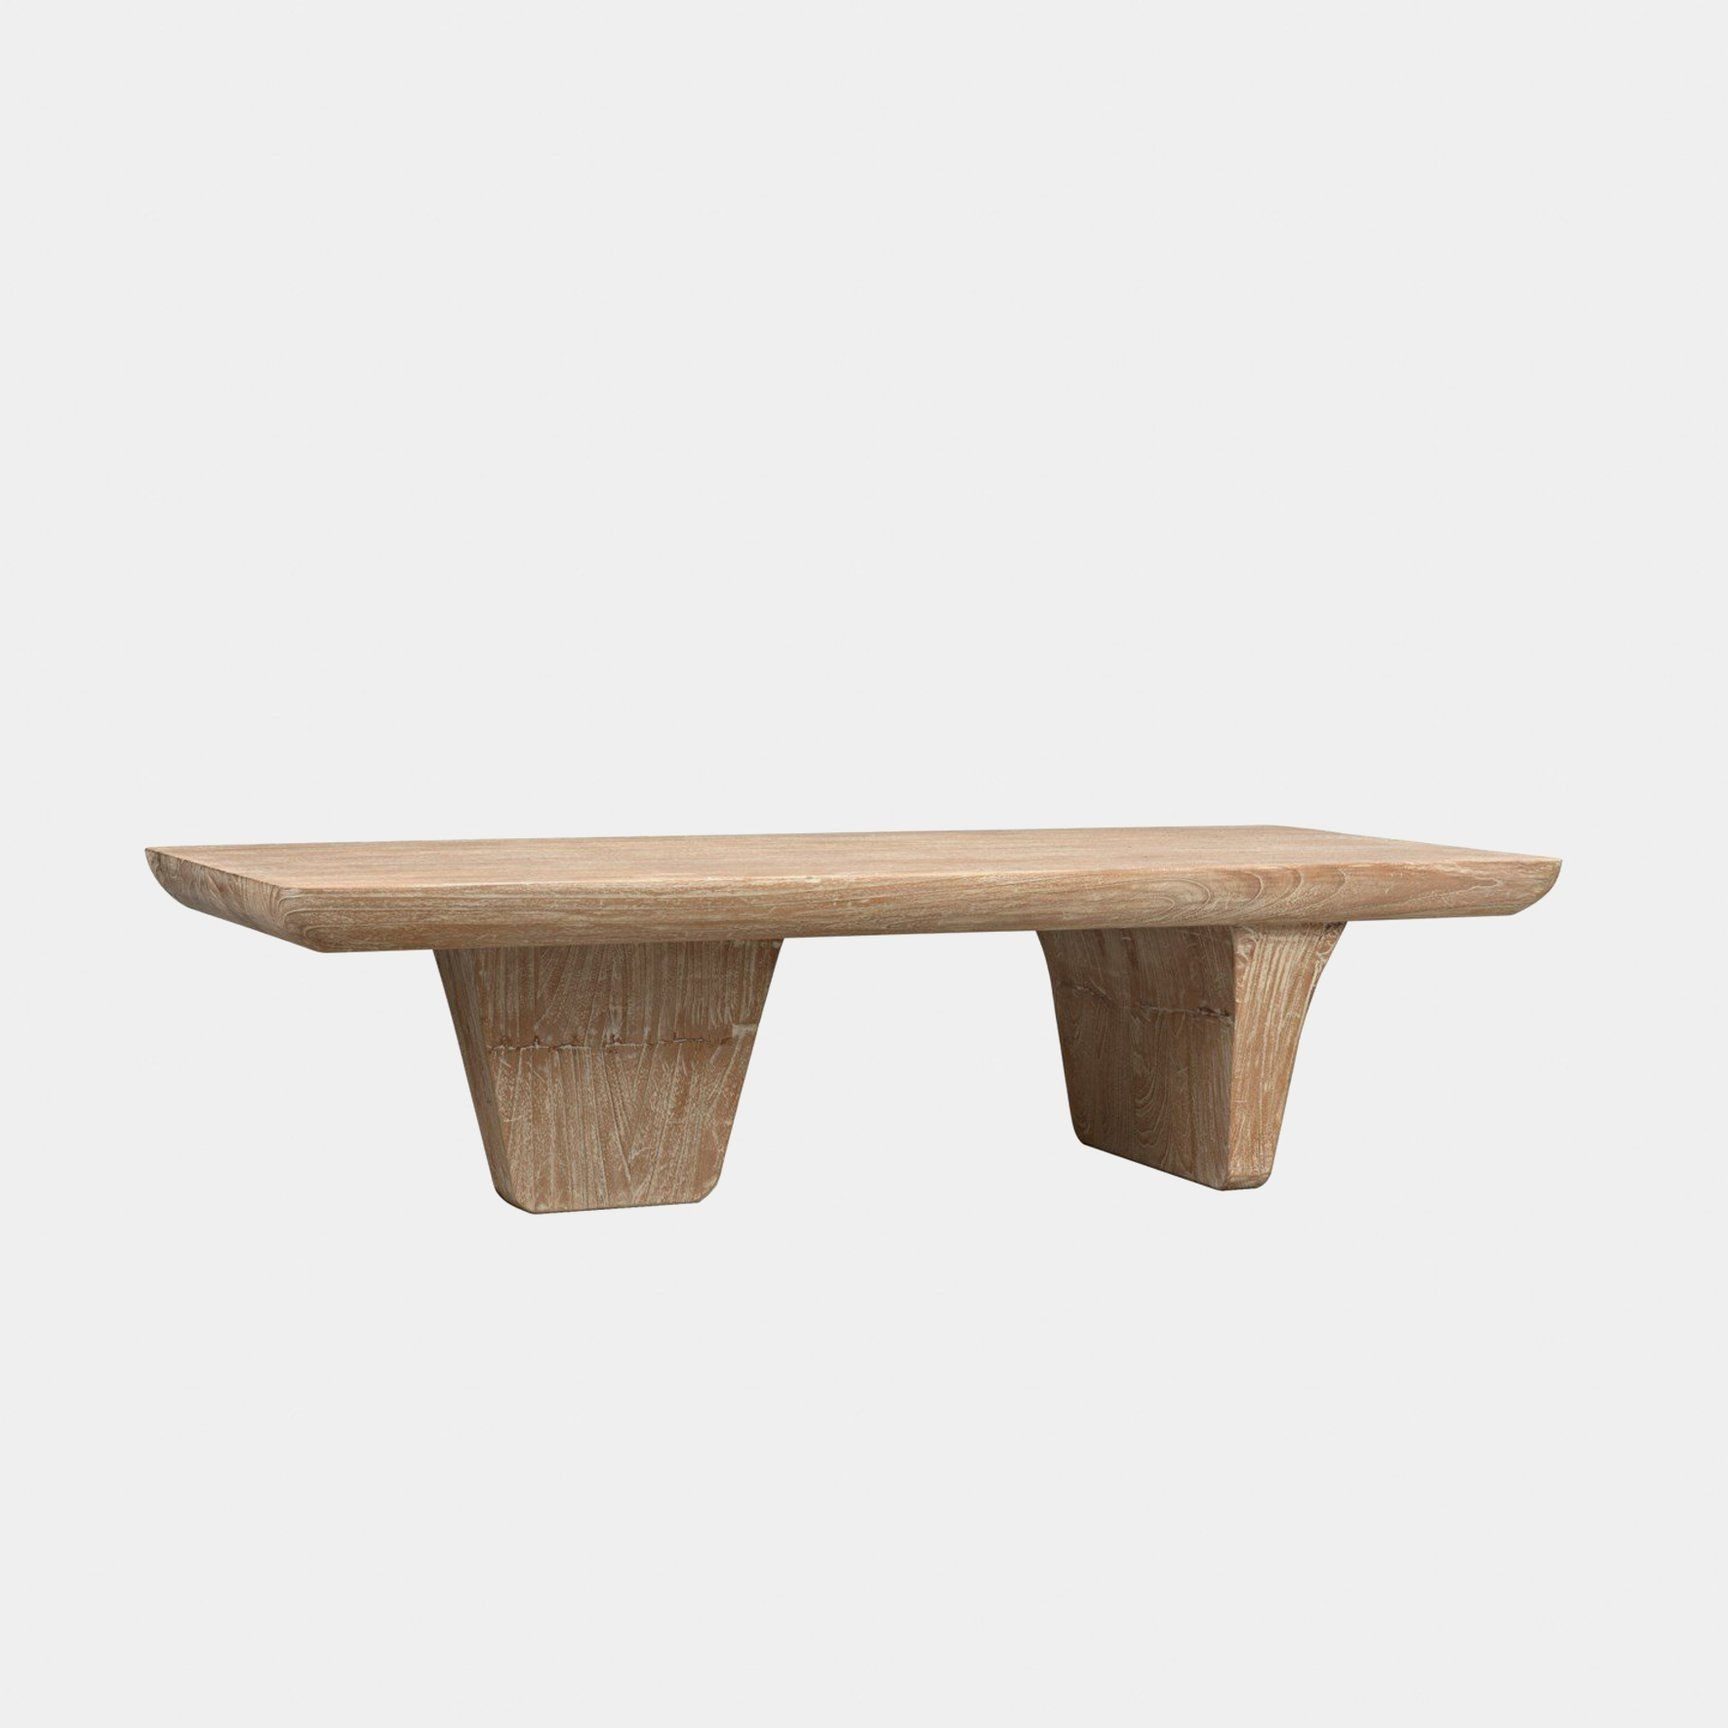 Patra Coffee Table In 2021 Coffee Table Coffee Tables For Sale Table [ 1728 x 1728 Pixel ]